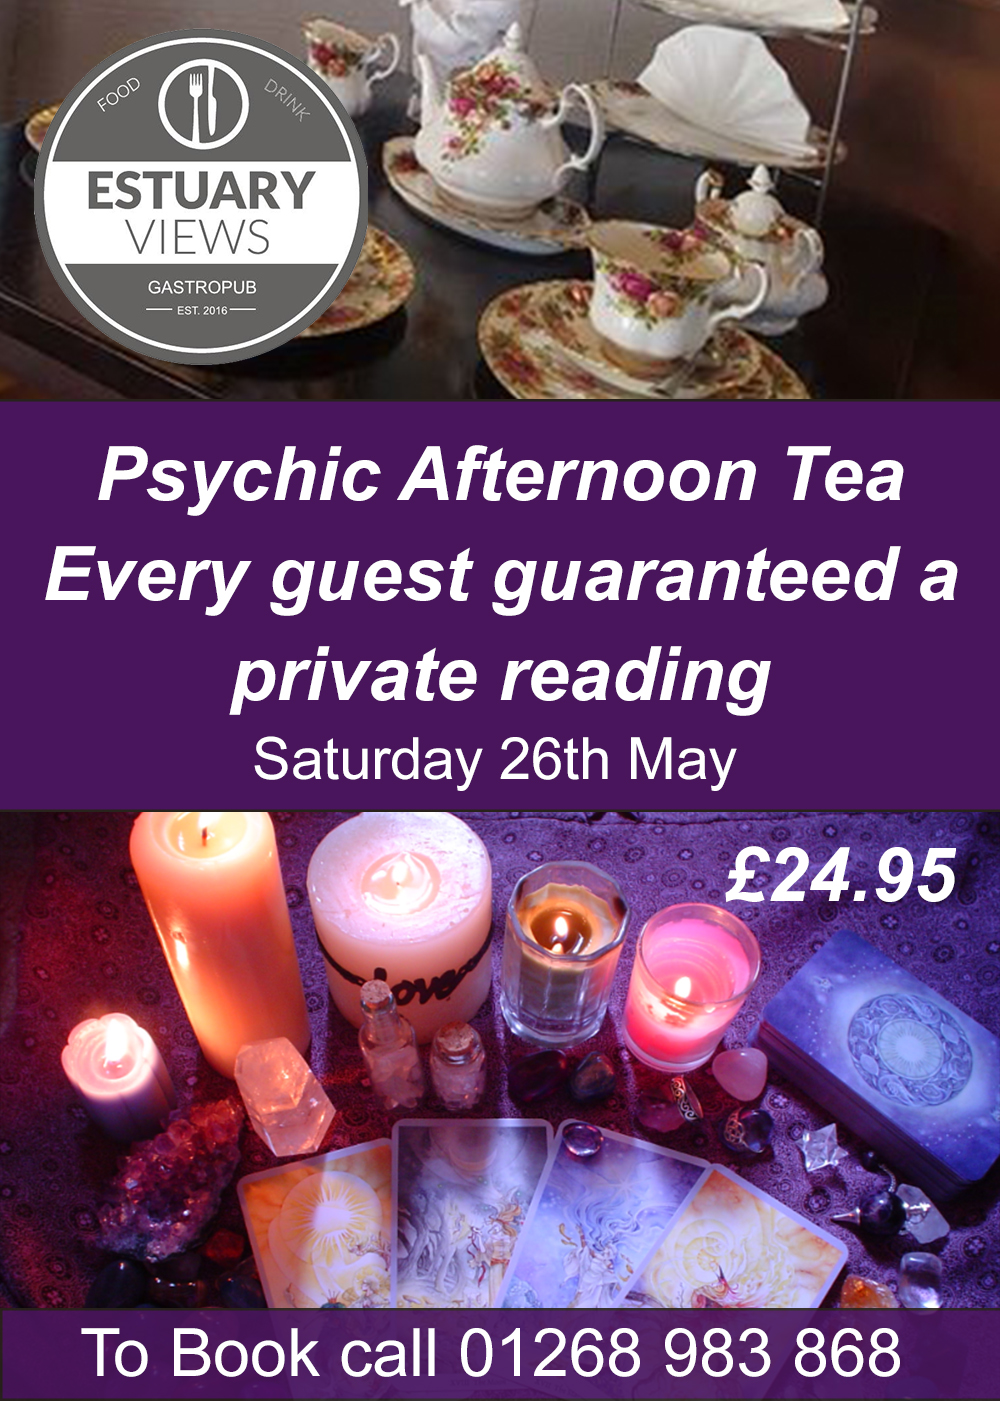 Psychic Afternoon Tea